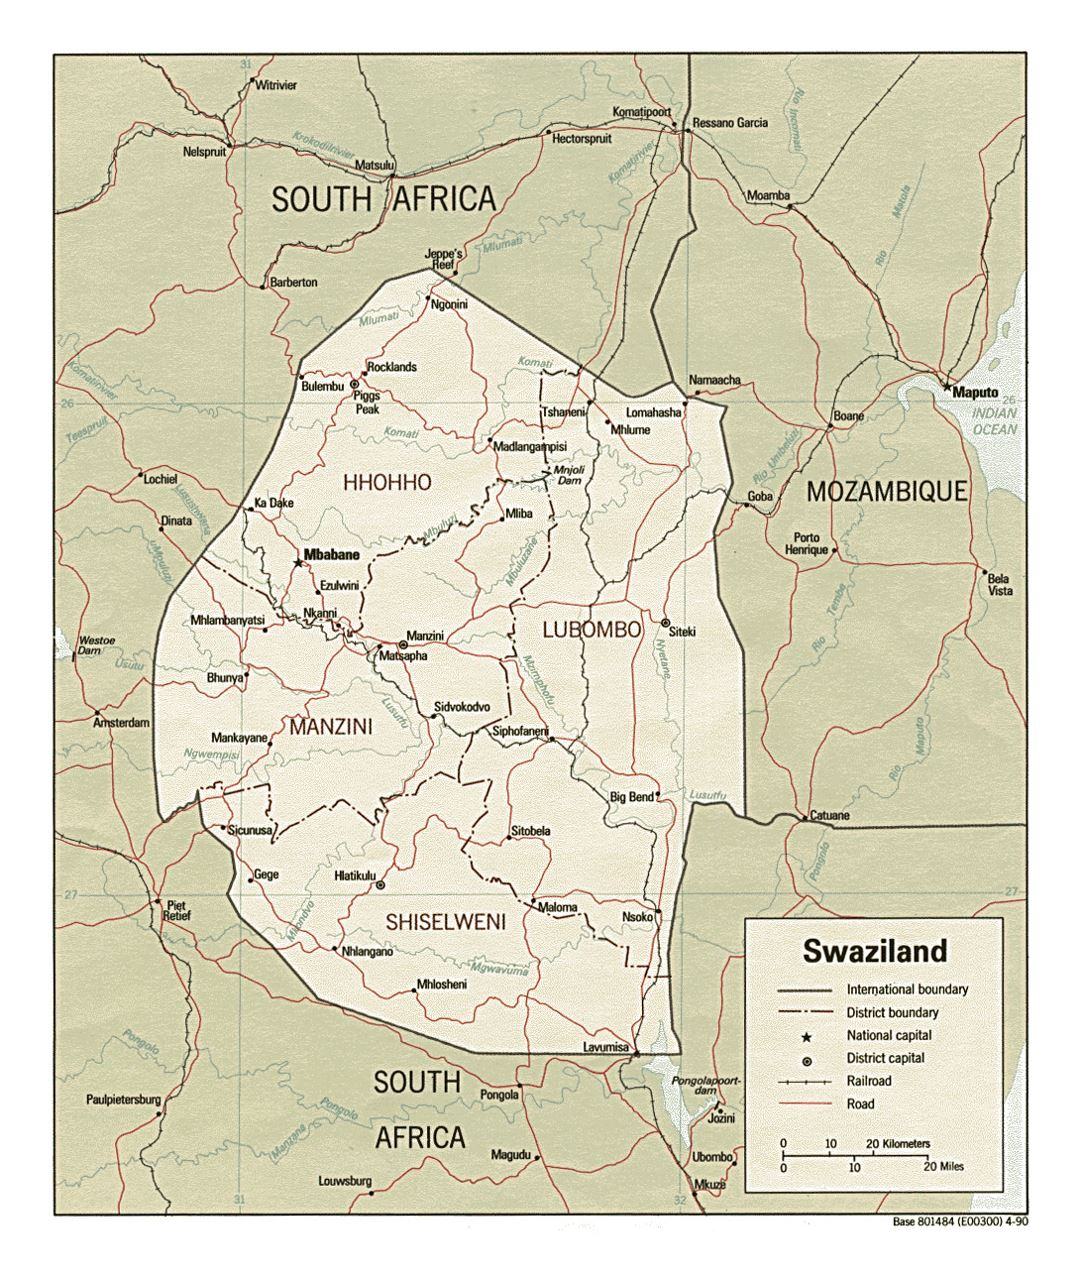 Detailed political and administrative map of Swaziland with roads, railroads and major cities - 1990